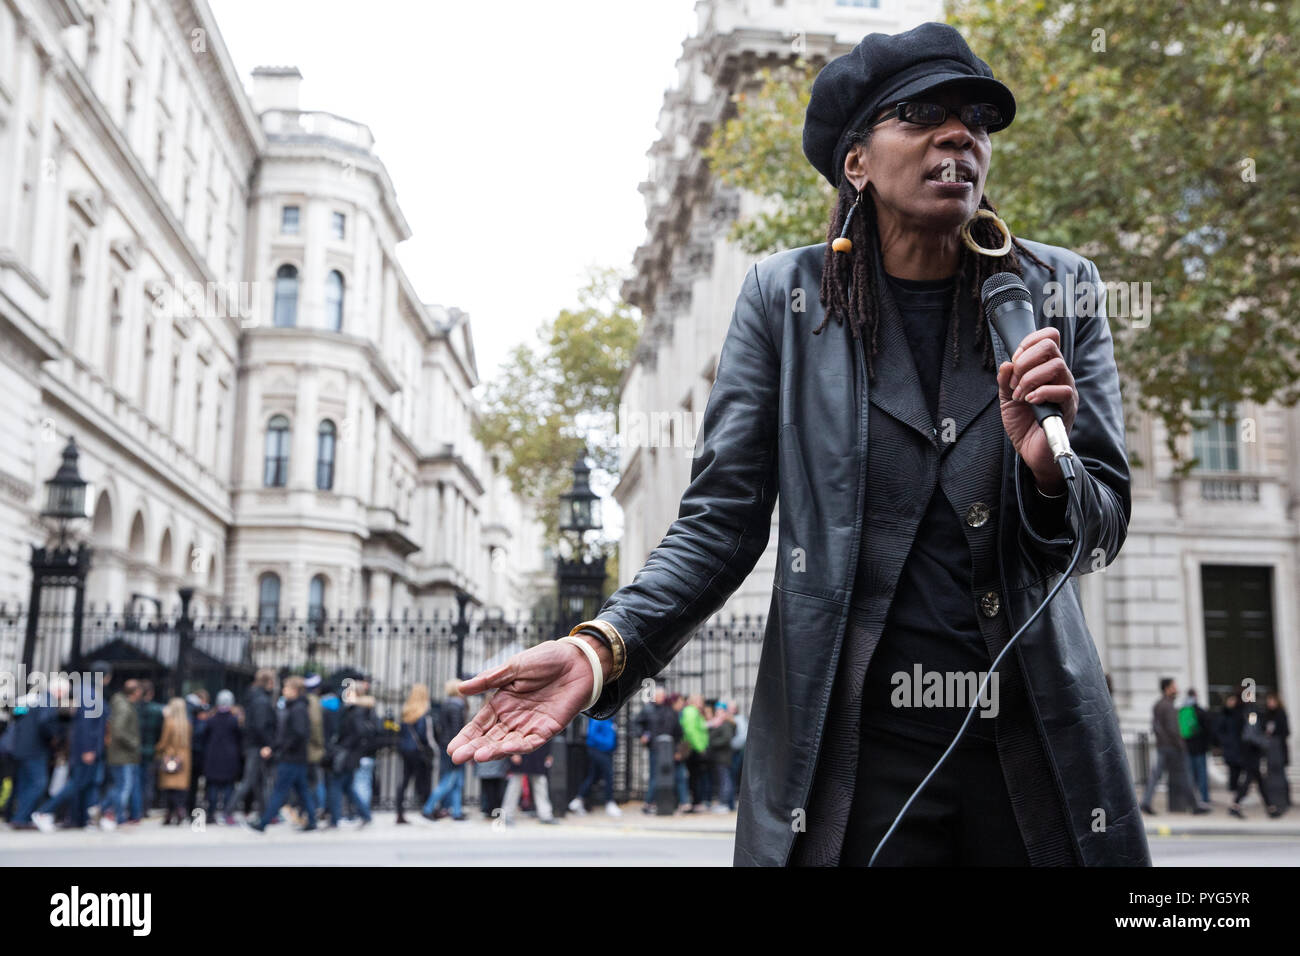 London, UK. 27th October, 2018. Marcia Rigg, sister of Sean Rigg, addresses campaigners from the United Families and Friends Campaign (UFFC) taking part in the 20th annual procession to Downing Street in remembrance of family members and friends who died in police custody, prison, immigration detention or secure psychiatric hospitals. Sean Rigg, 40, died on 21st August 2008 while in police custody at Brixton police station. Credit: Mark Kerrison/Alamy Live News - Stock Image